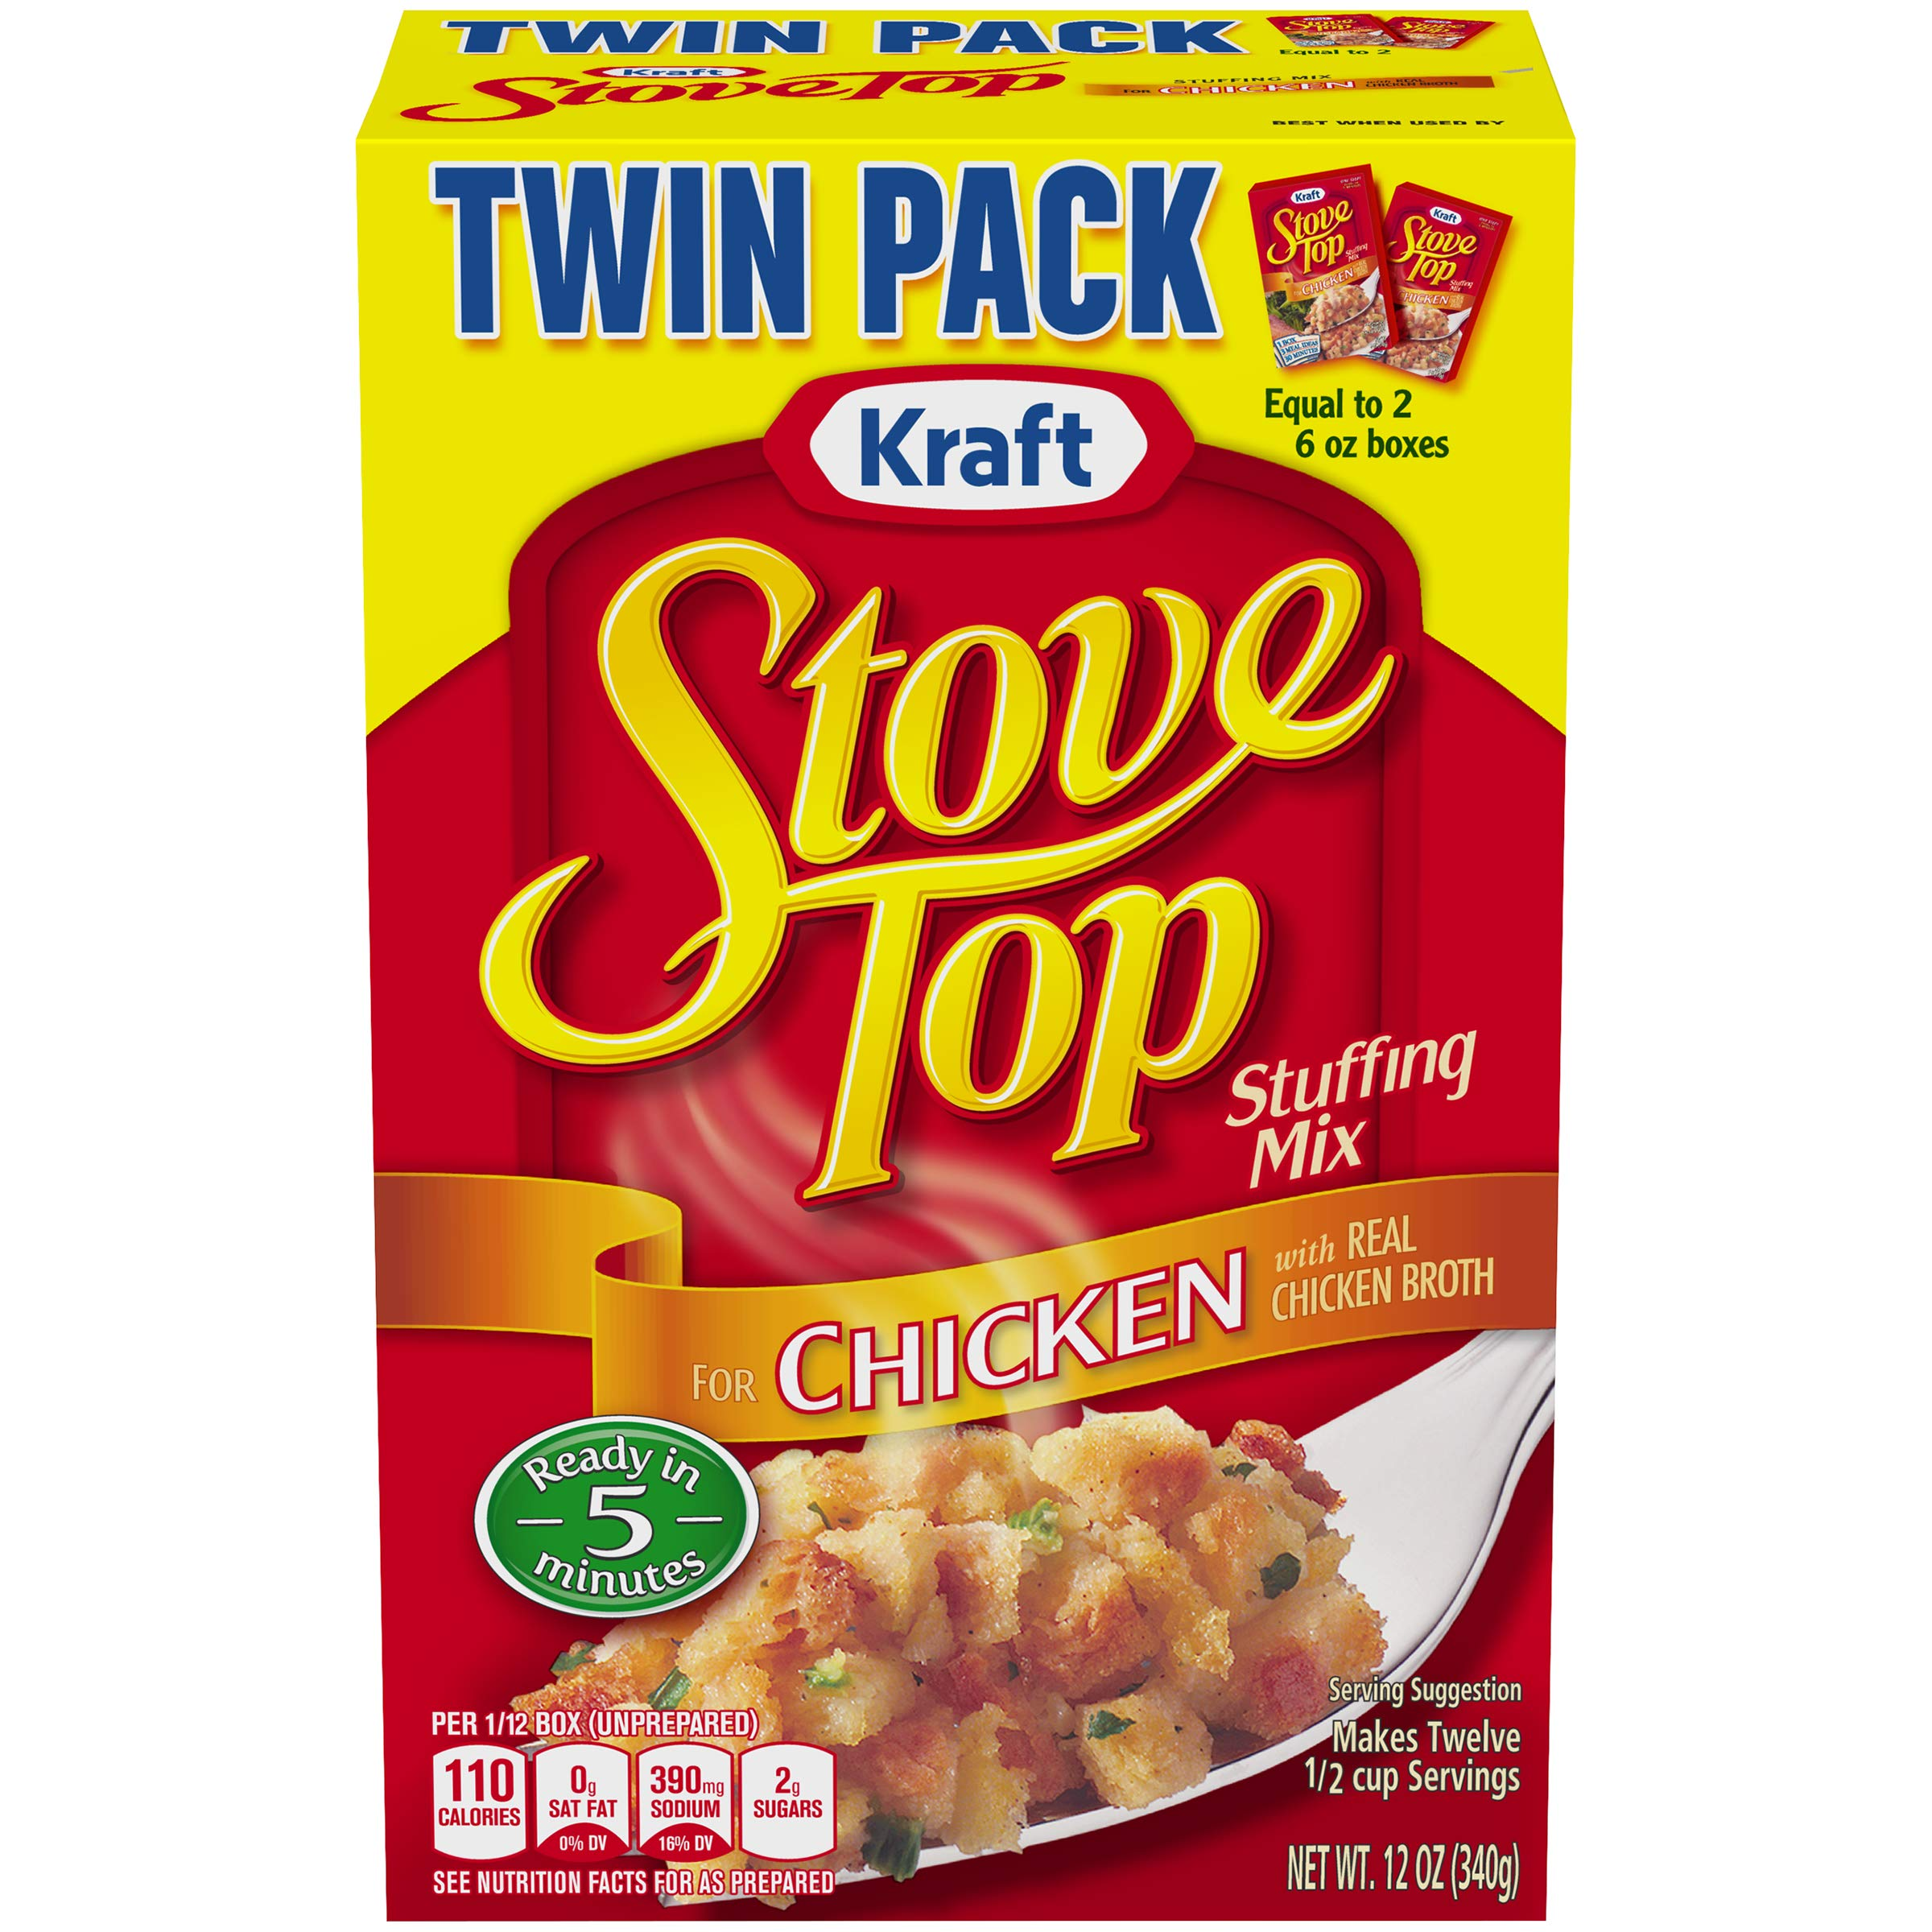 Kraft Stove Top Twin Pack Stuffing Mix For Chicken, 12 oz Box